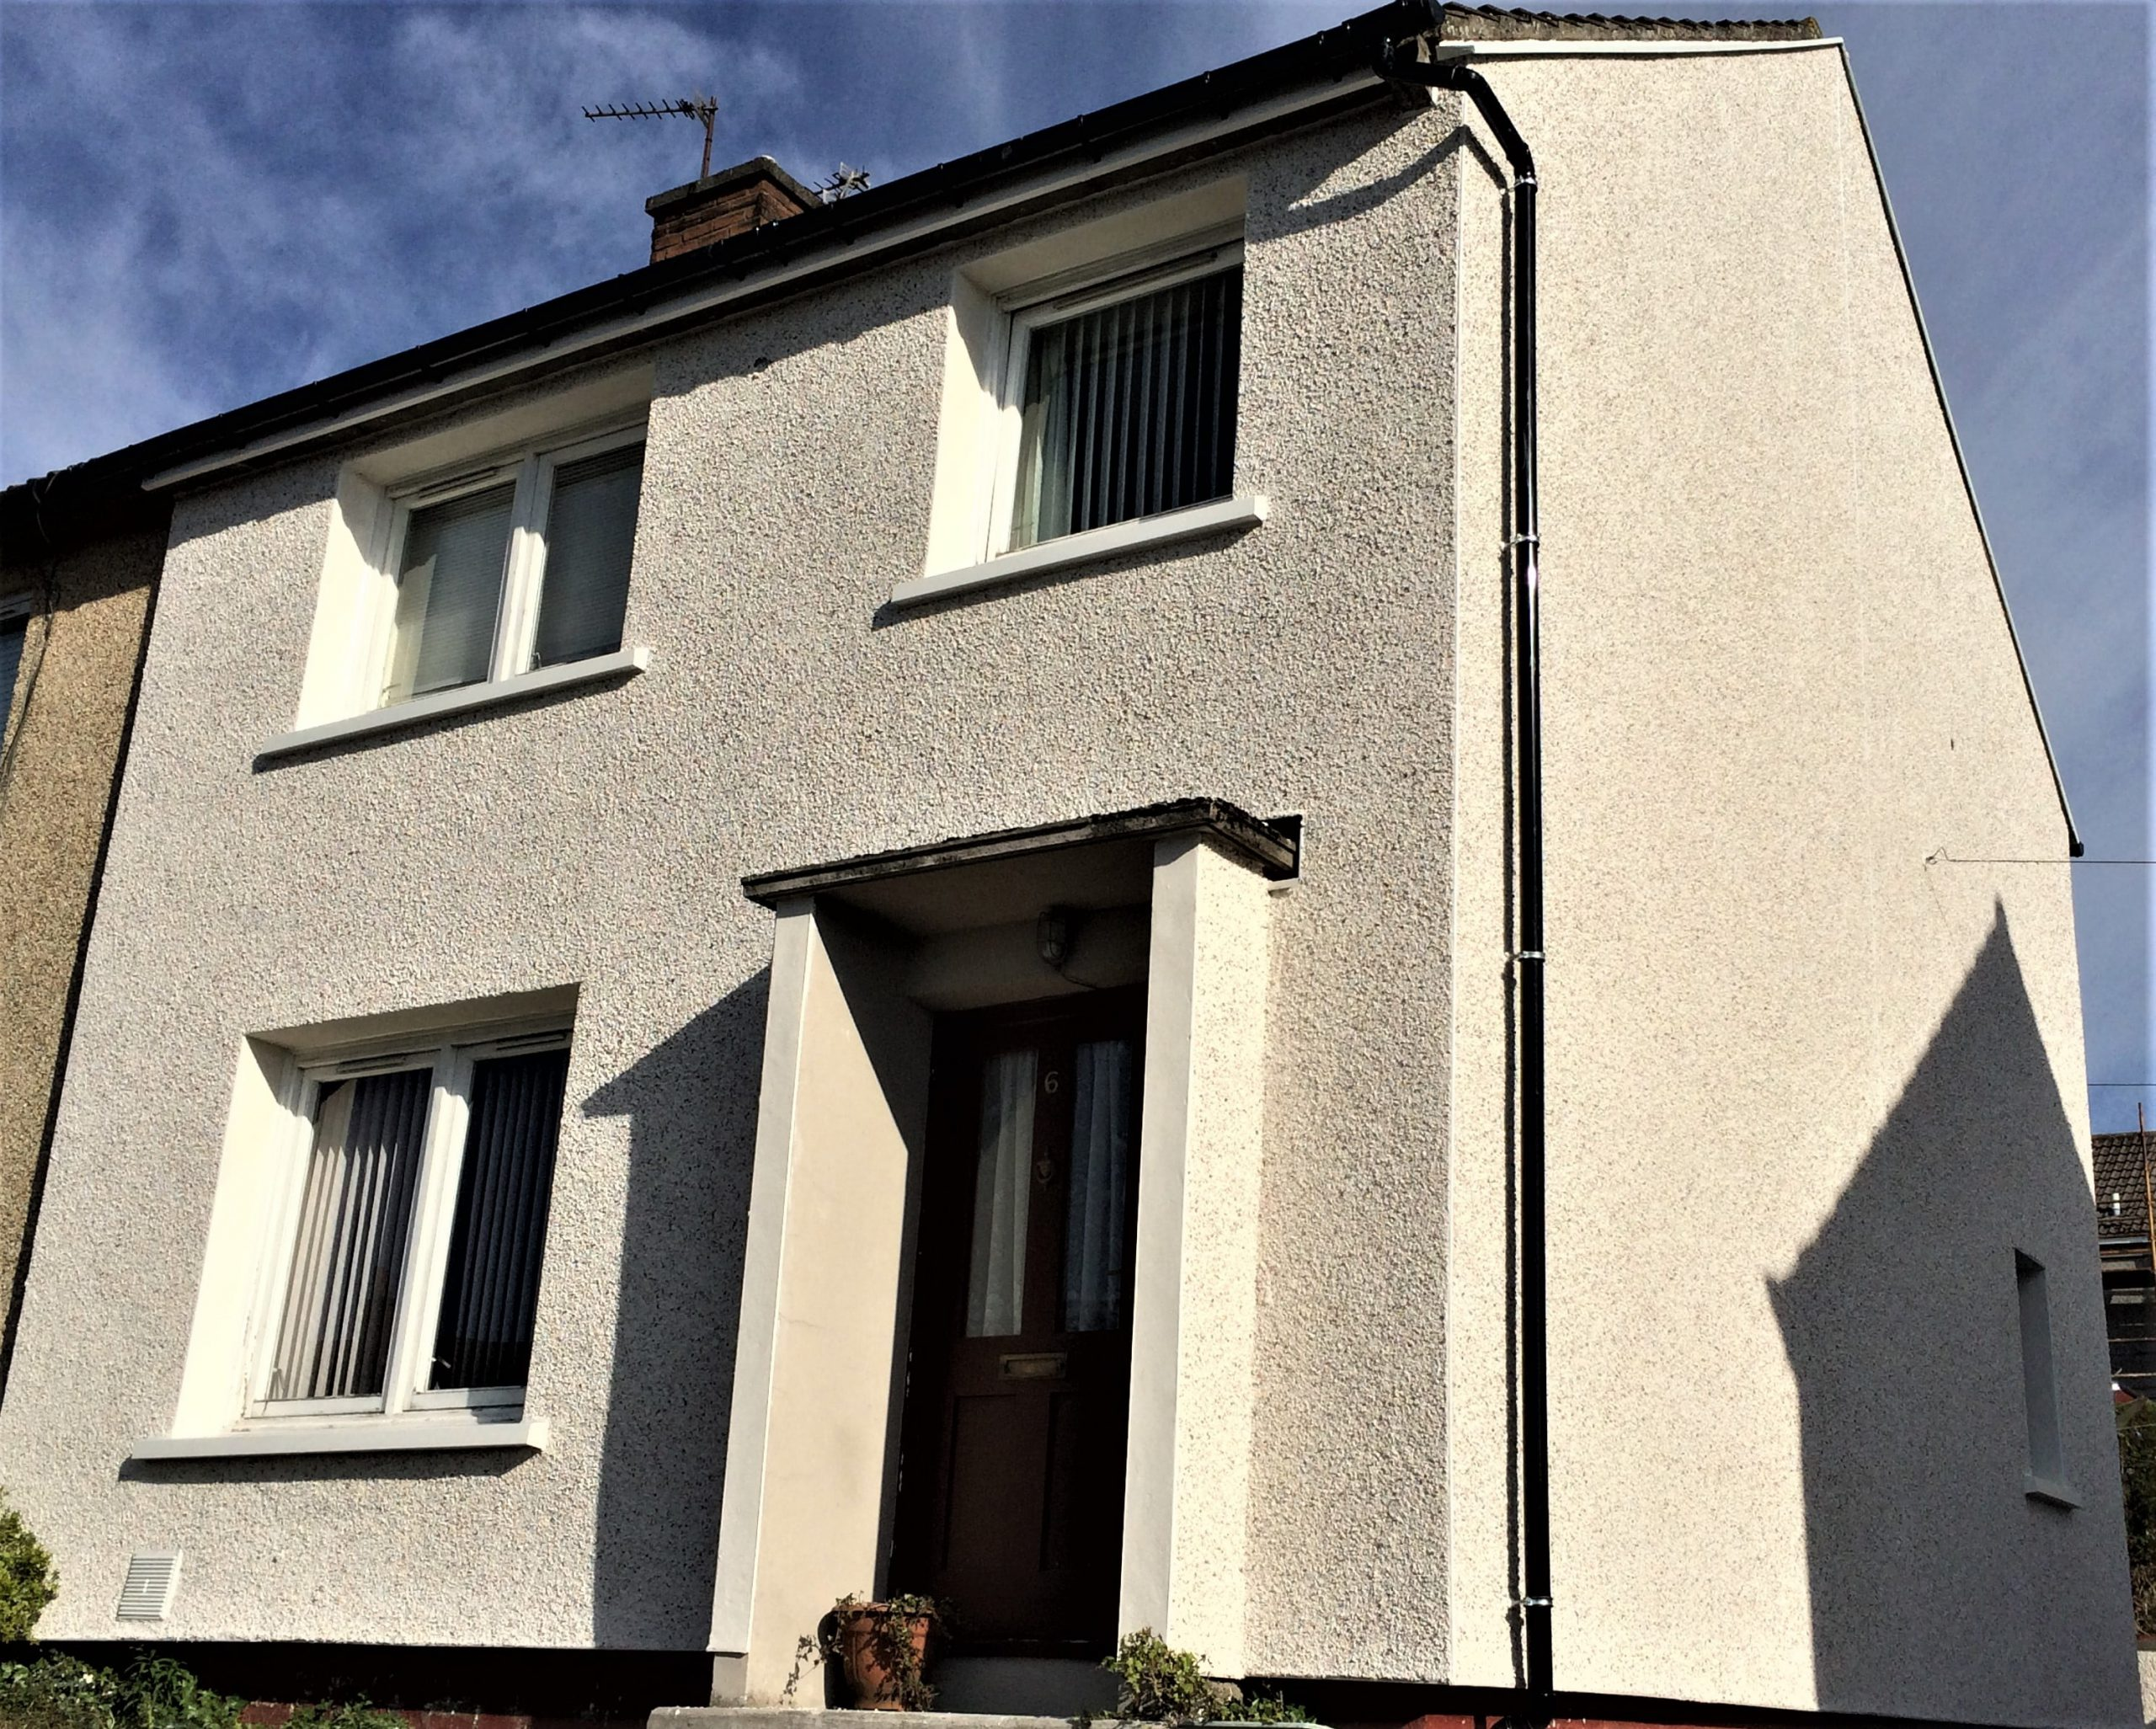 roughcast-render-Edinburgh-dry-dash-render-Edinburgh